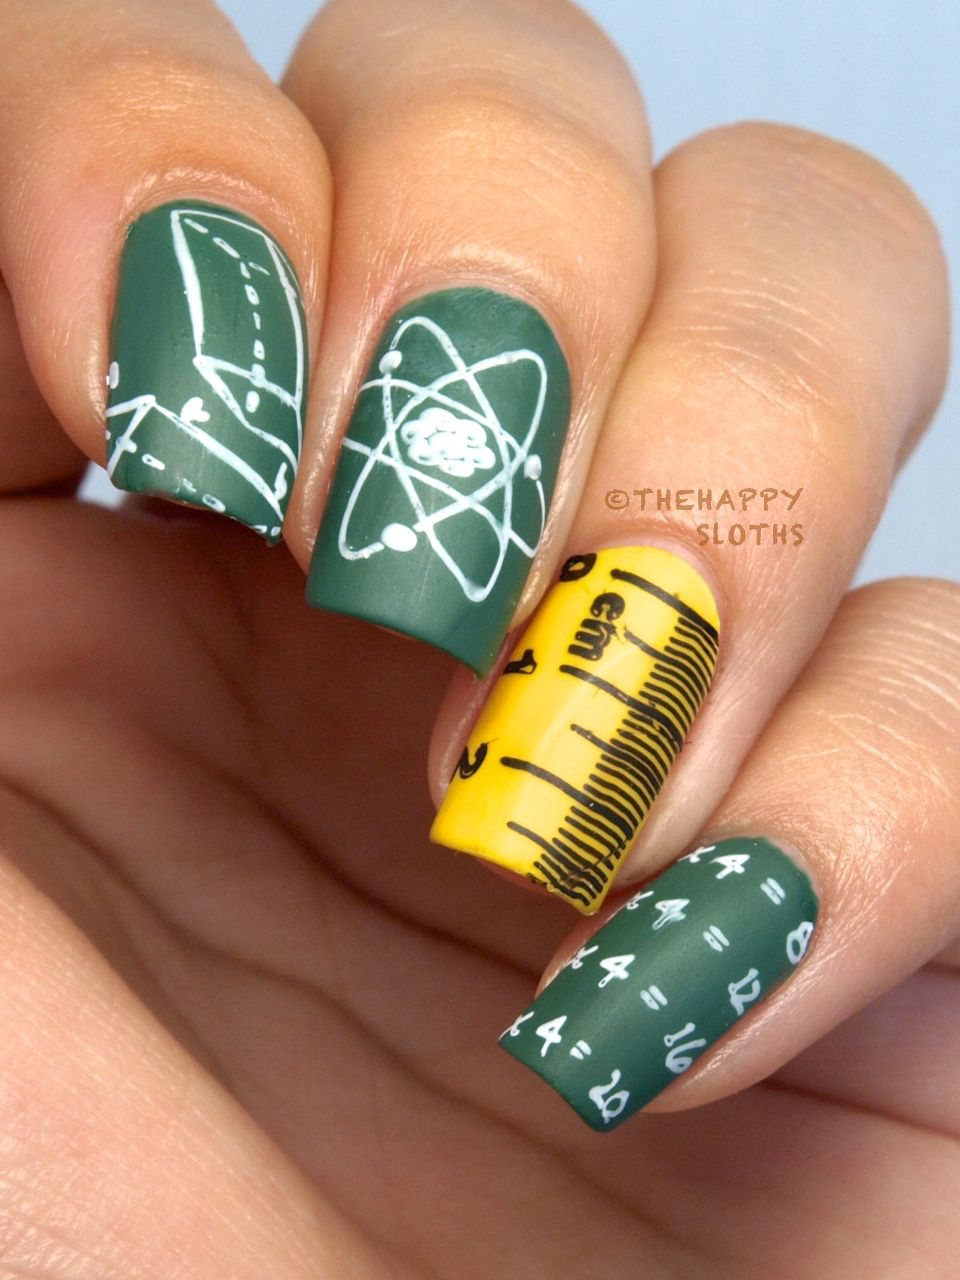 Back to school nails featuring moyou london scholar collection so there you have it a back to school manicure from the girl who isnt going back to school not any time soon i dont think let me know what you think prinsesfo Choice Image